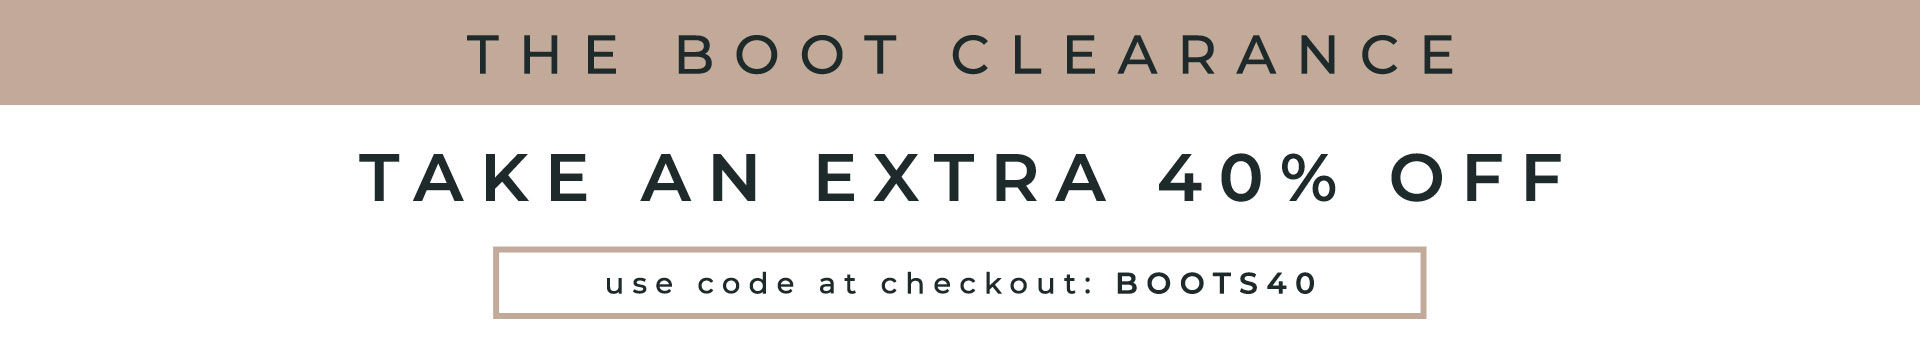 The Boot Clearance | Take an Extra 40% OFF | Use code at checkout: BOOTS40